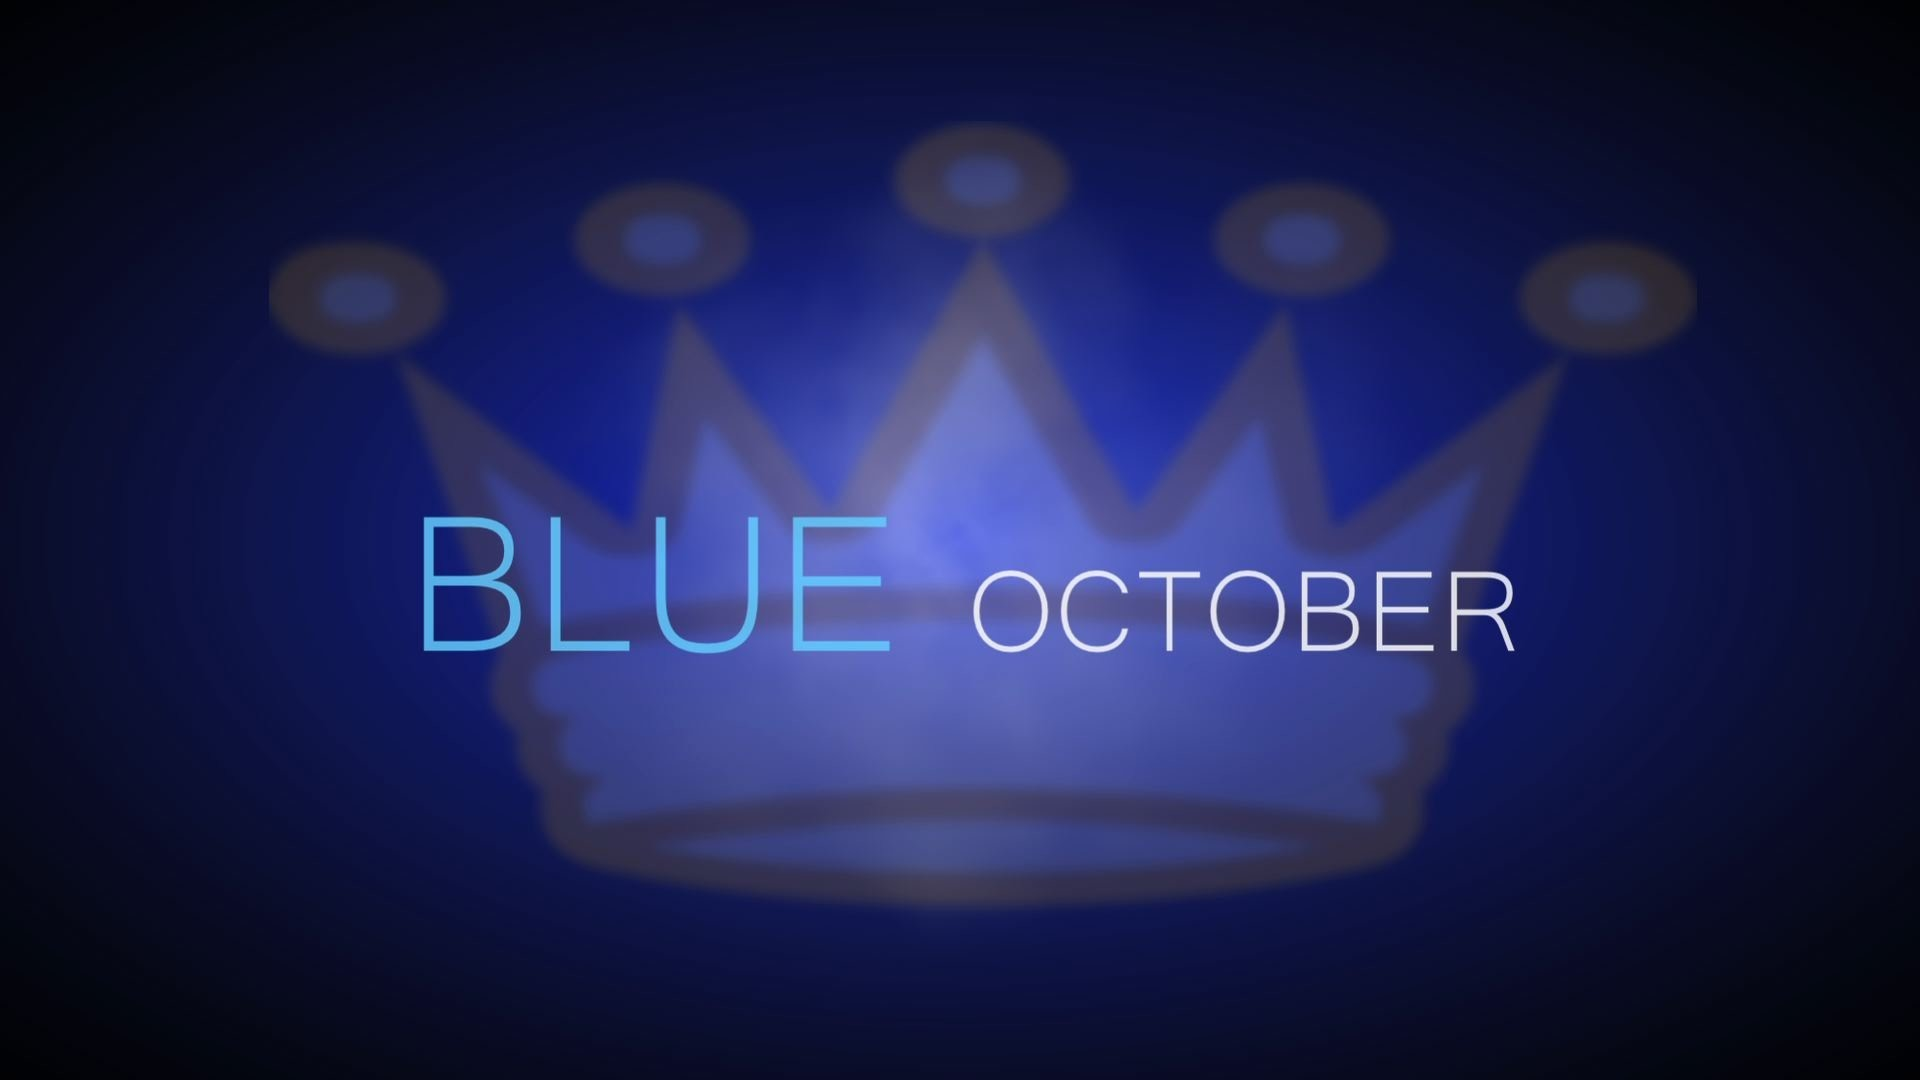 1920x1080 Blue October - A Tribute to the KC Royals